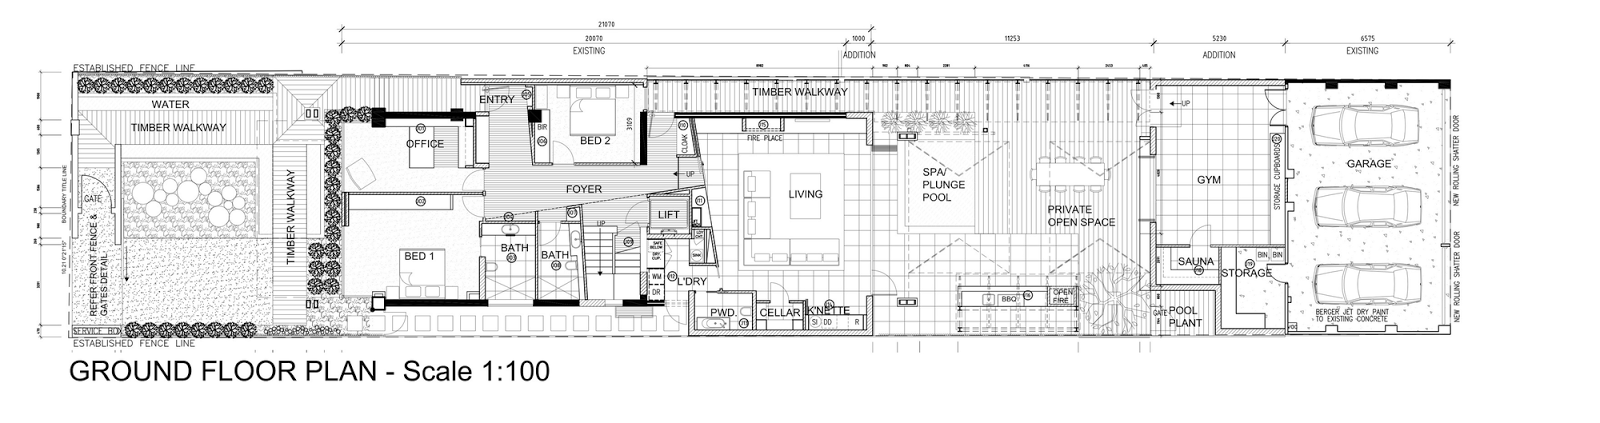 Ground floor plan by Finnis Architects